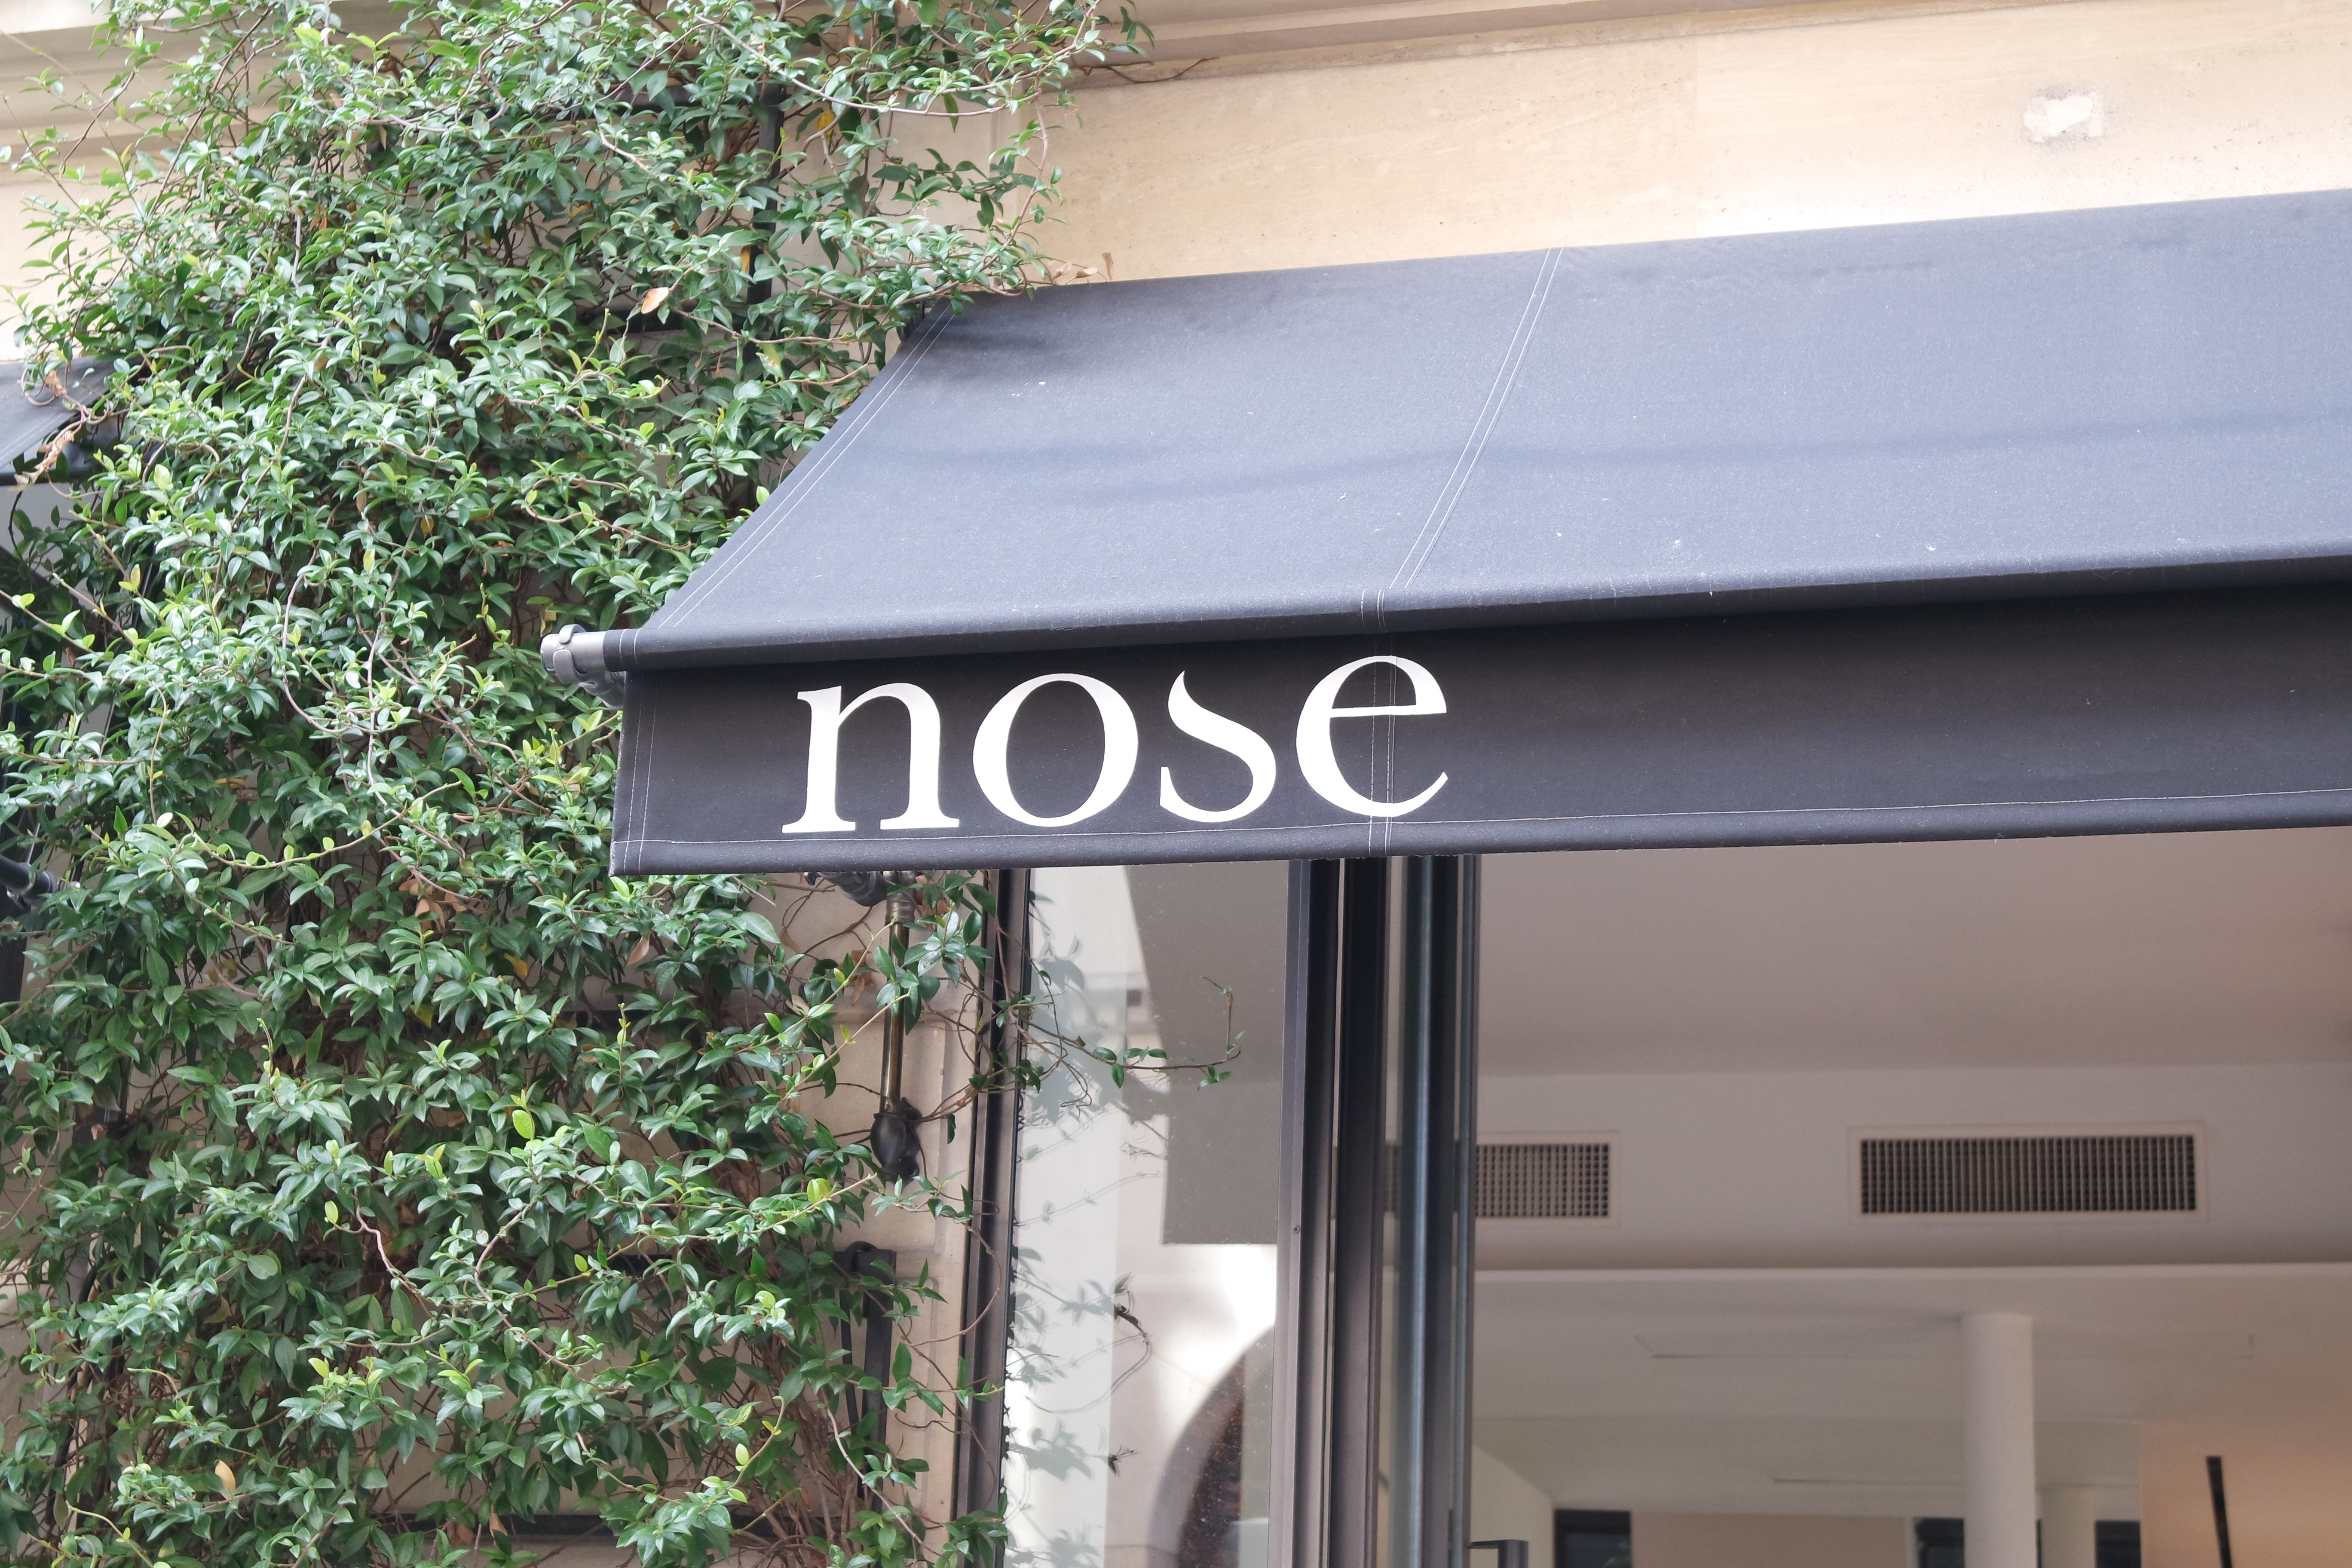 Nose Celest-in.fr